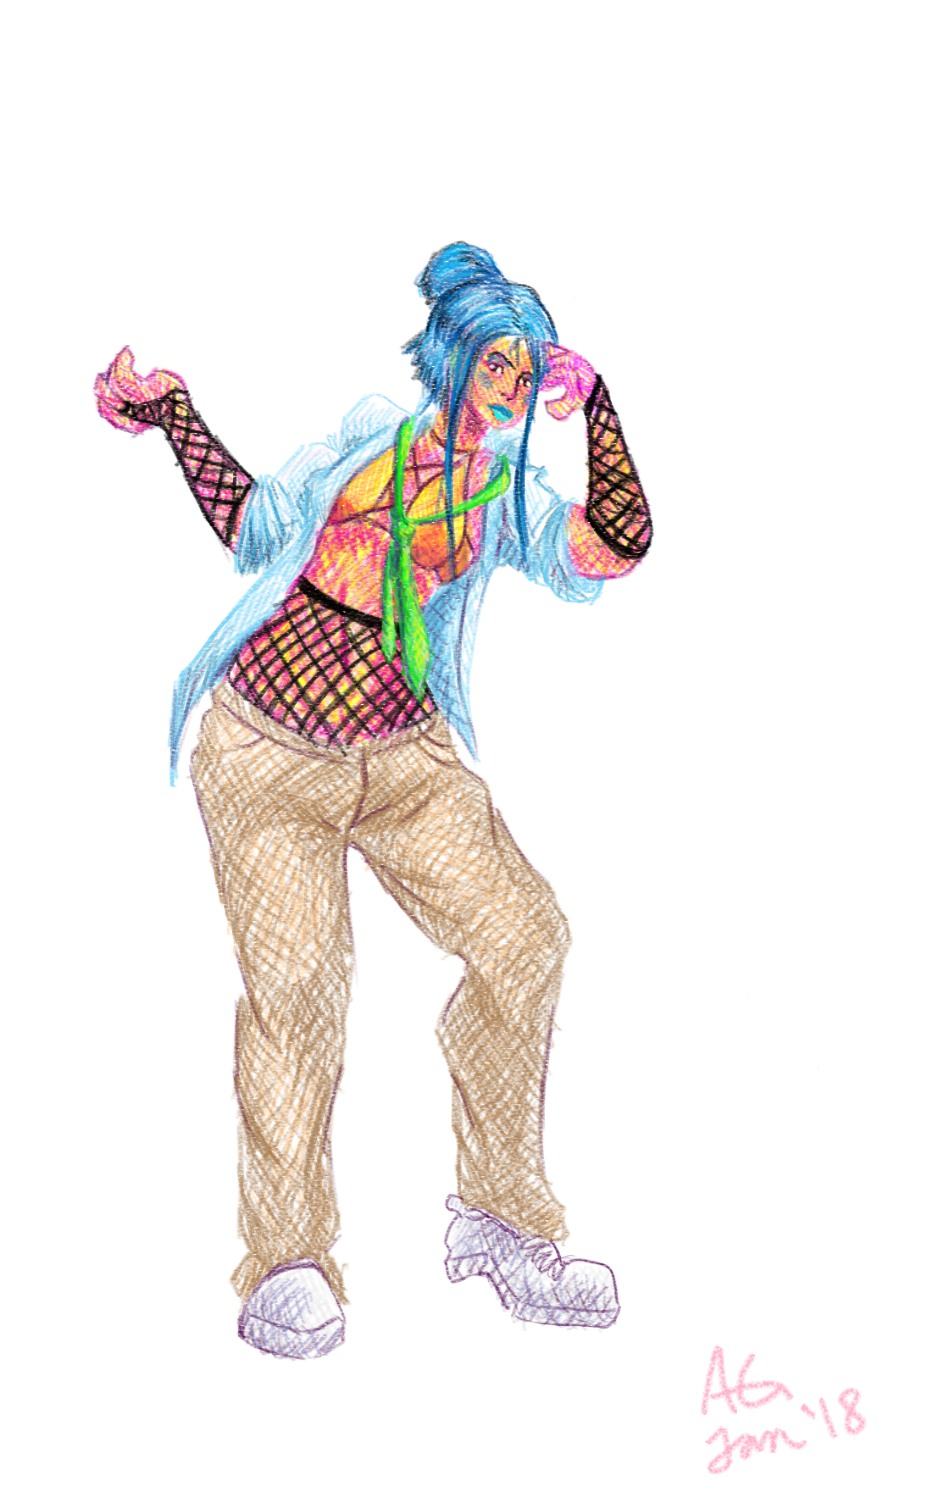 Character SketchesBlue Hair Char Design Experiment by NinjaObsessed